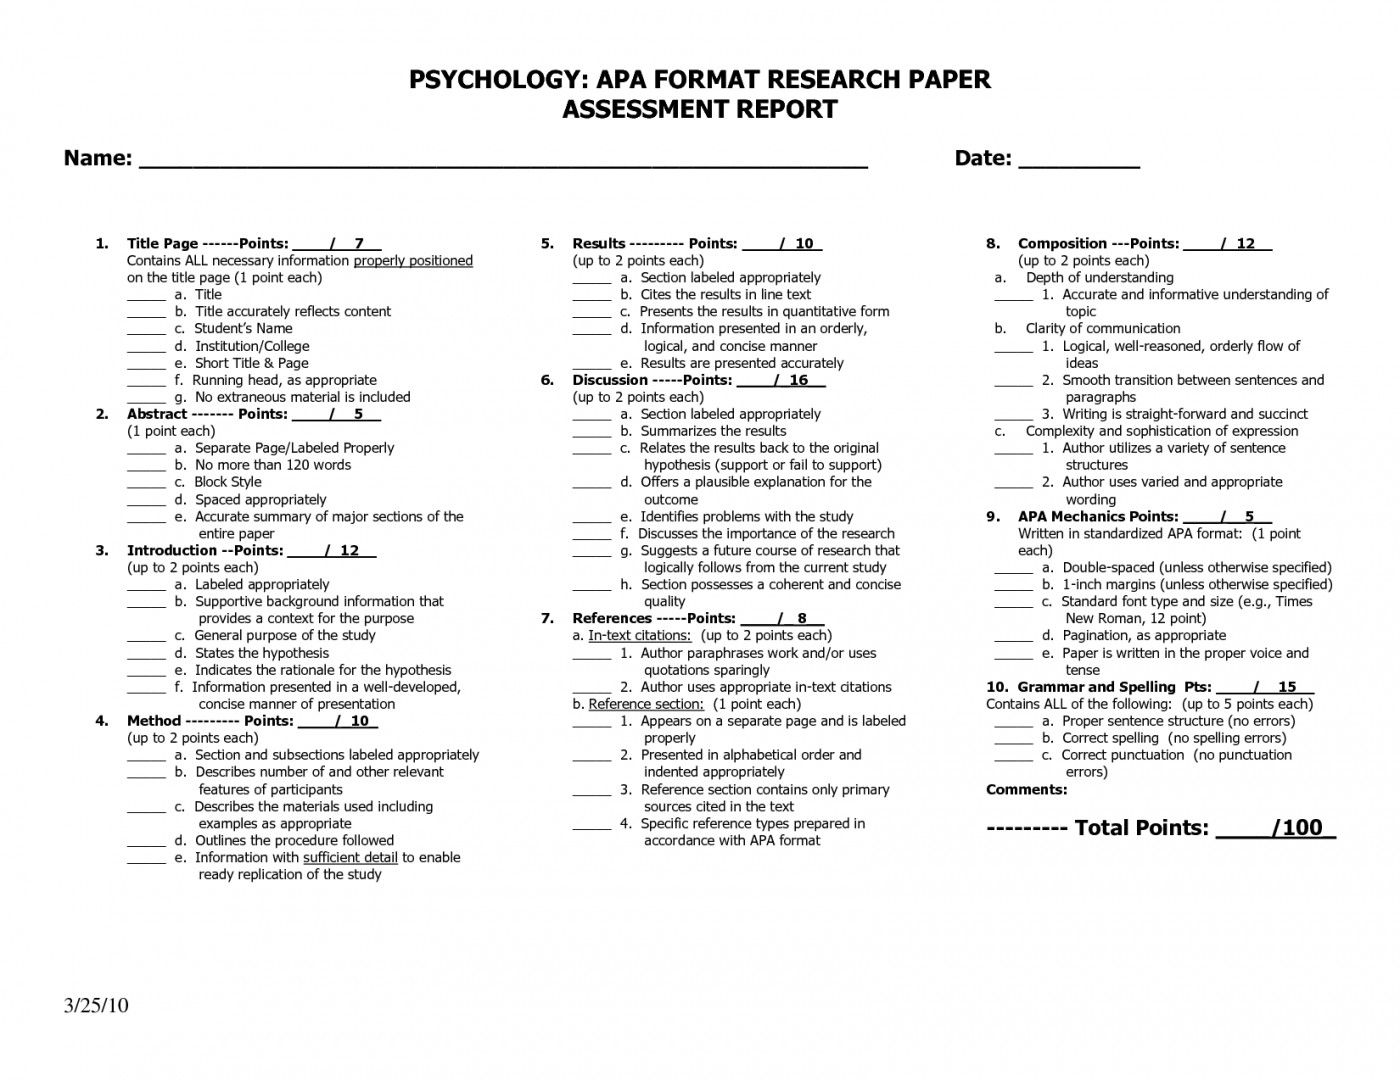 021 Research Paper Apa Format For Psychology Striking Topics High School Students Reddit 1400